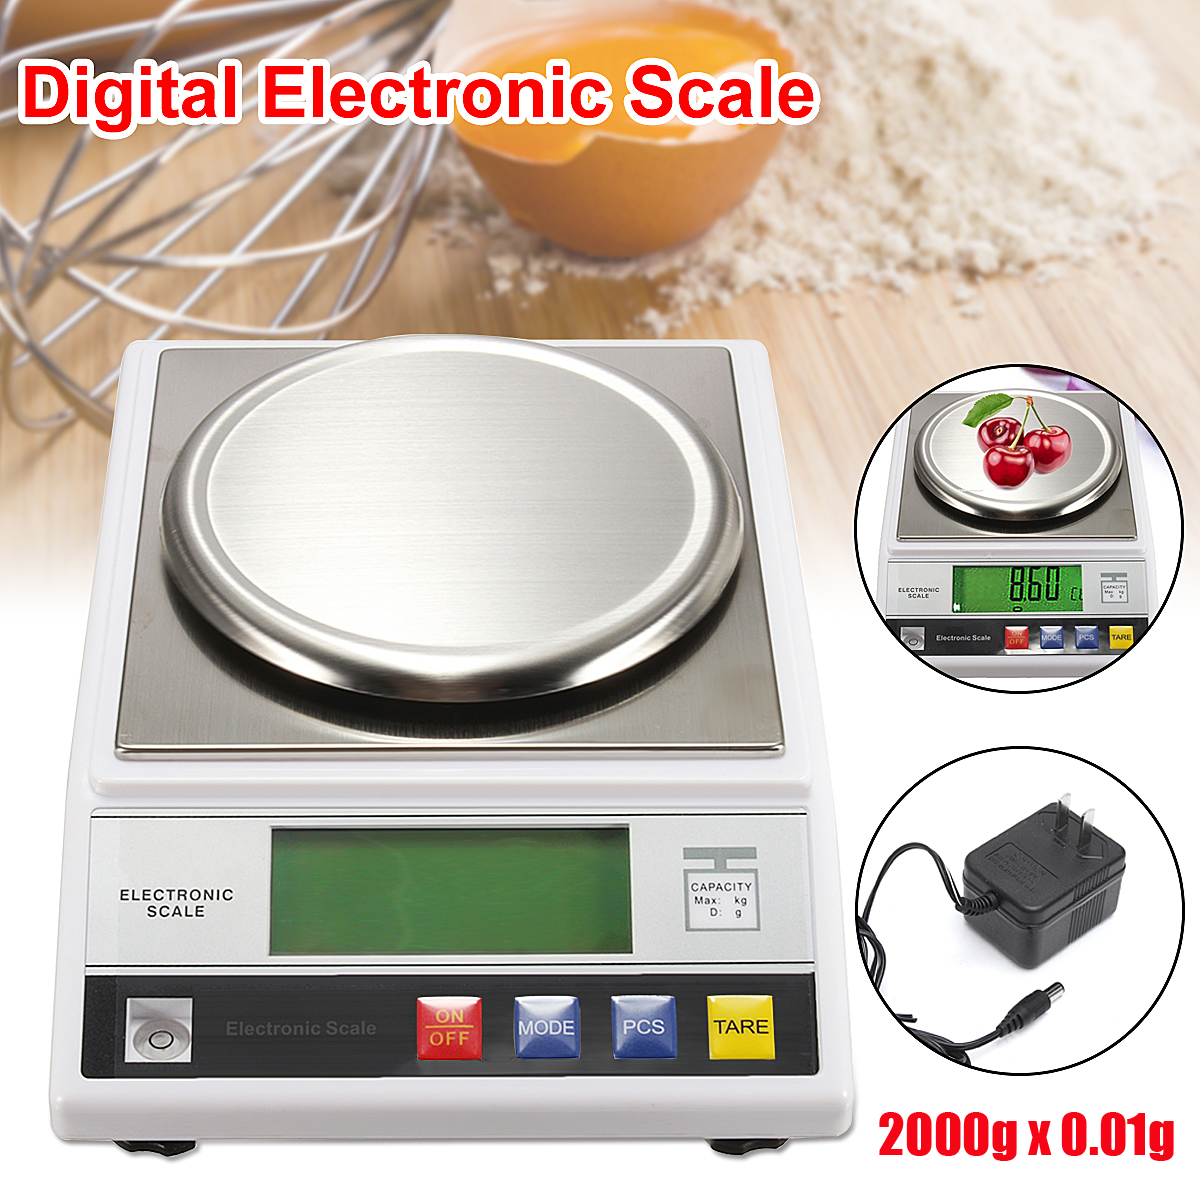 7.5V DC 200mA 2kg LCD Digital Electric Scale Jewelry Weight Balance Gram with US Plug Power Adapter7.5V DC 200mA 2kg LCD Digital Electric Scale Jewelry Weight Balance Gram with US Plug Power Adapter